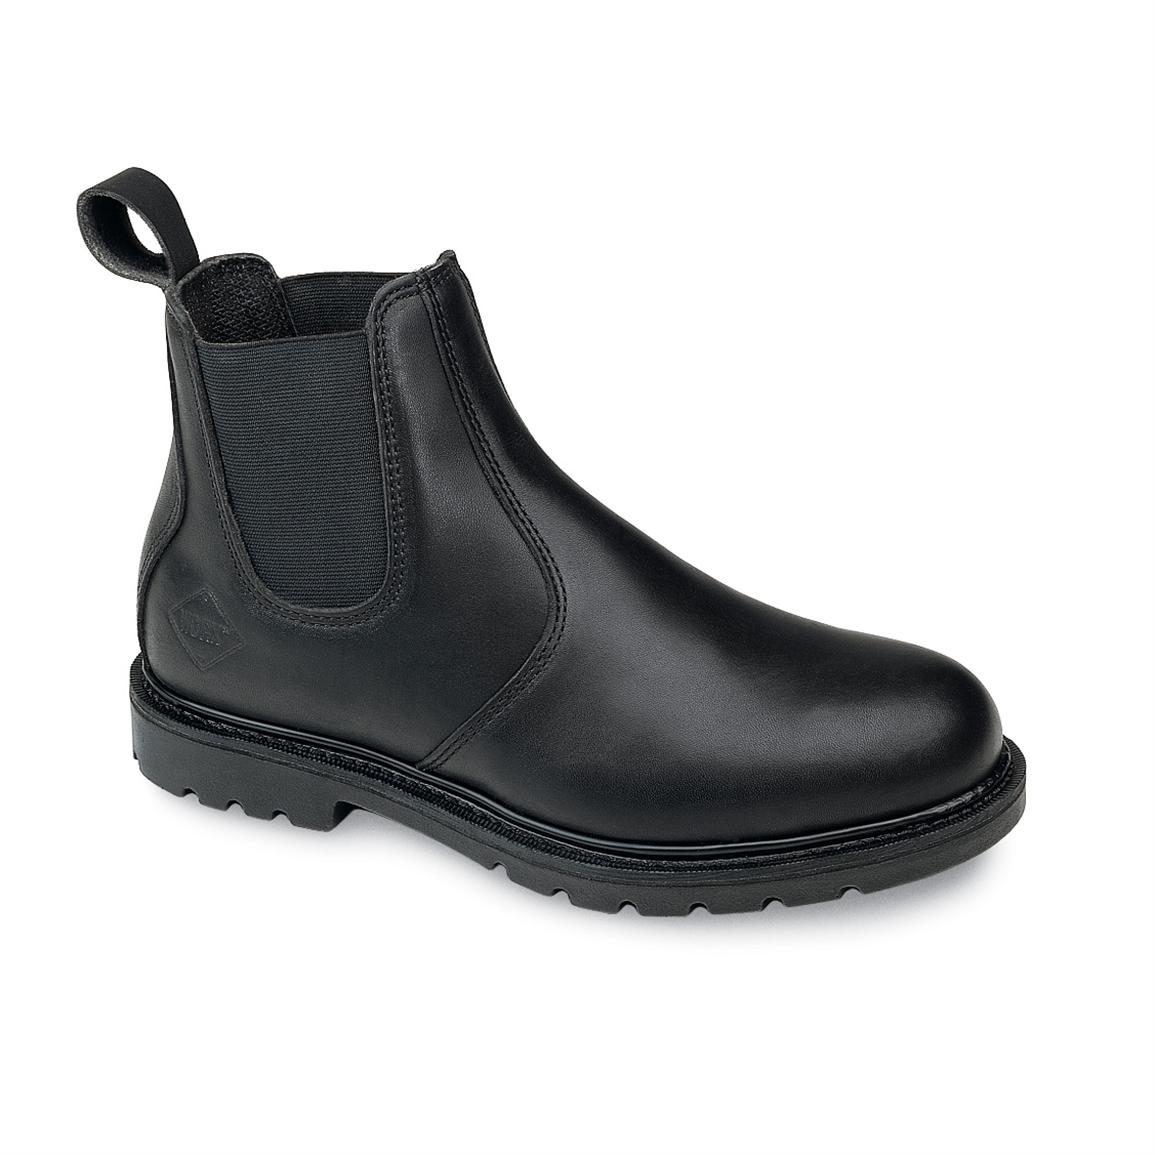 Red Wing Slip On Boots ZywGivc9